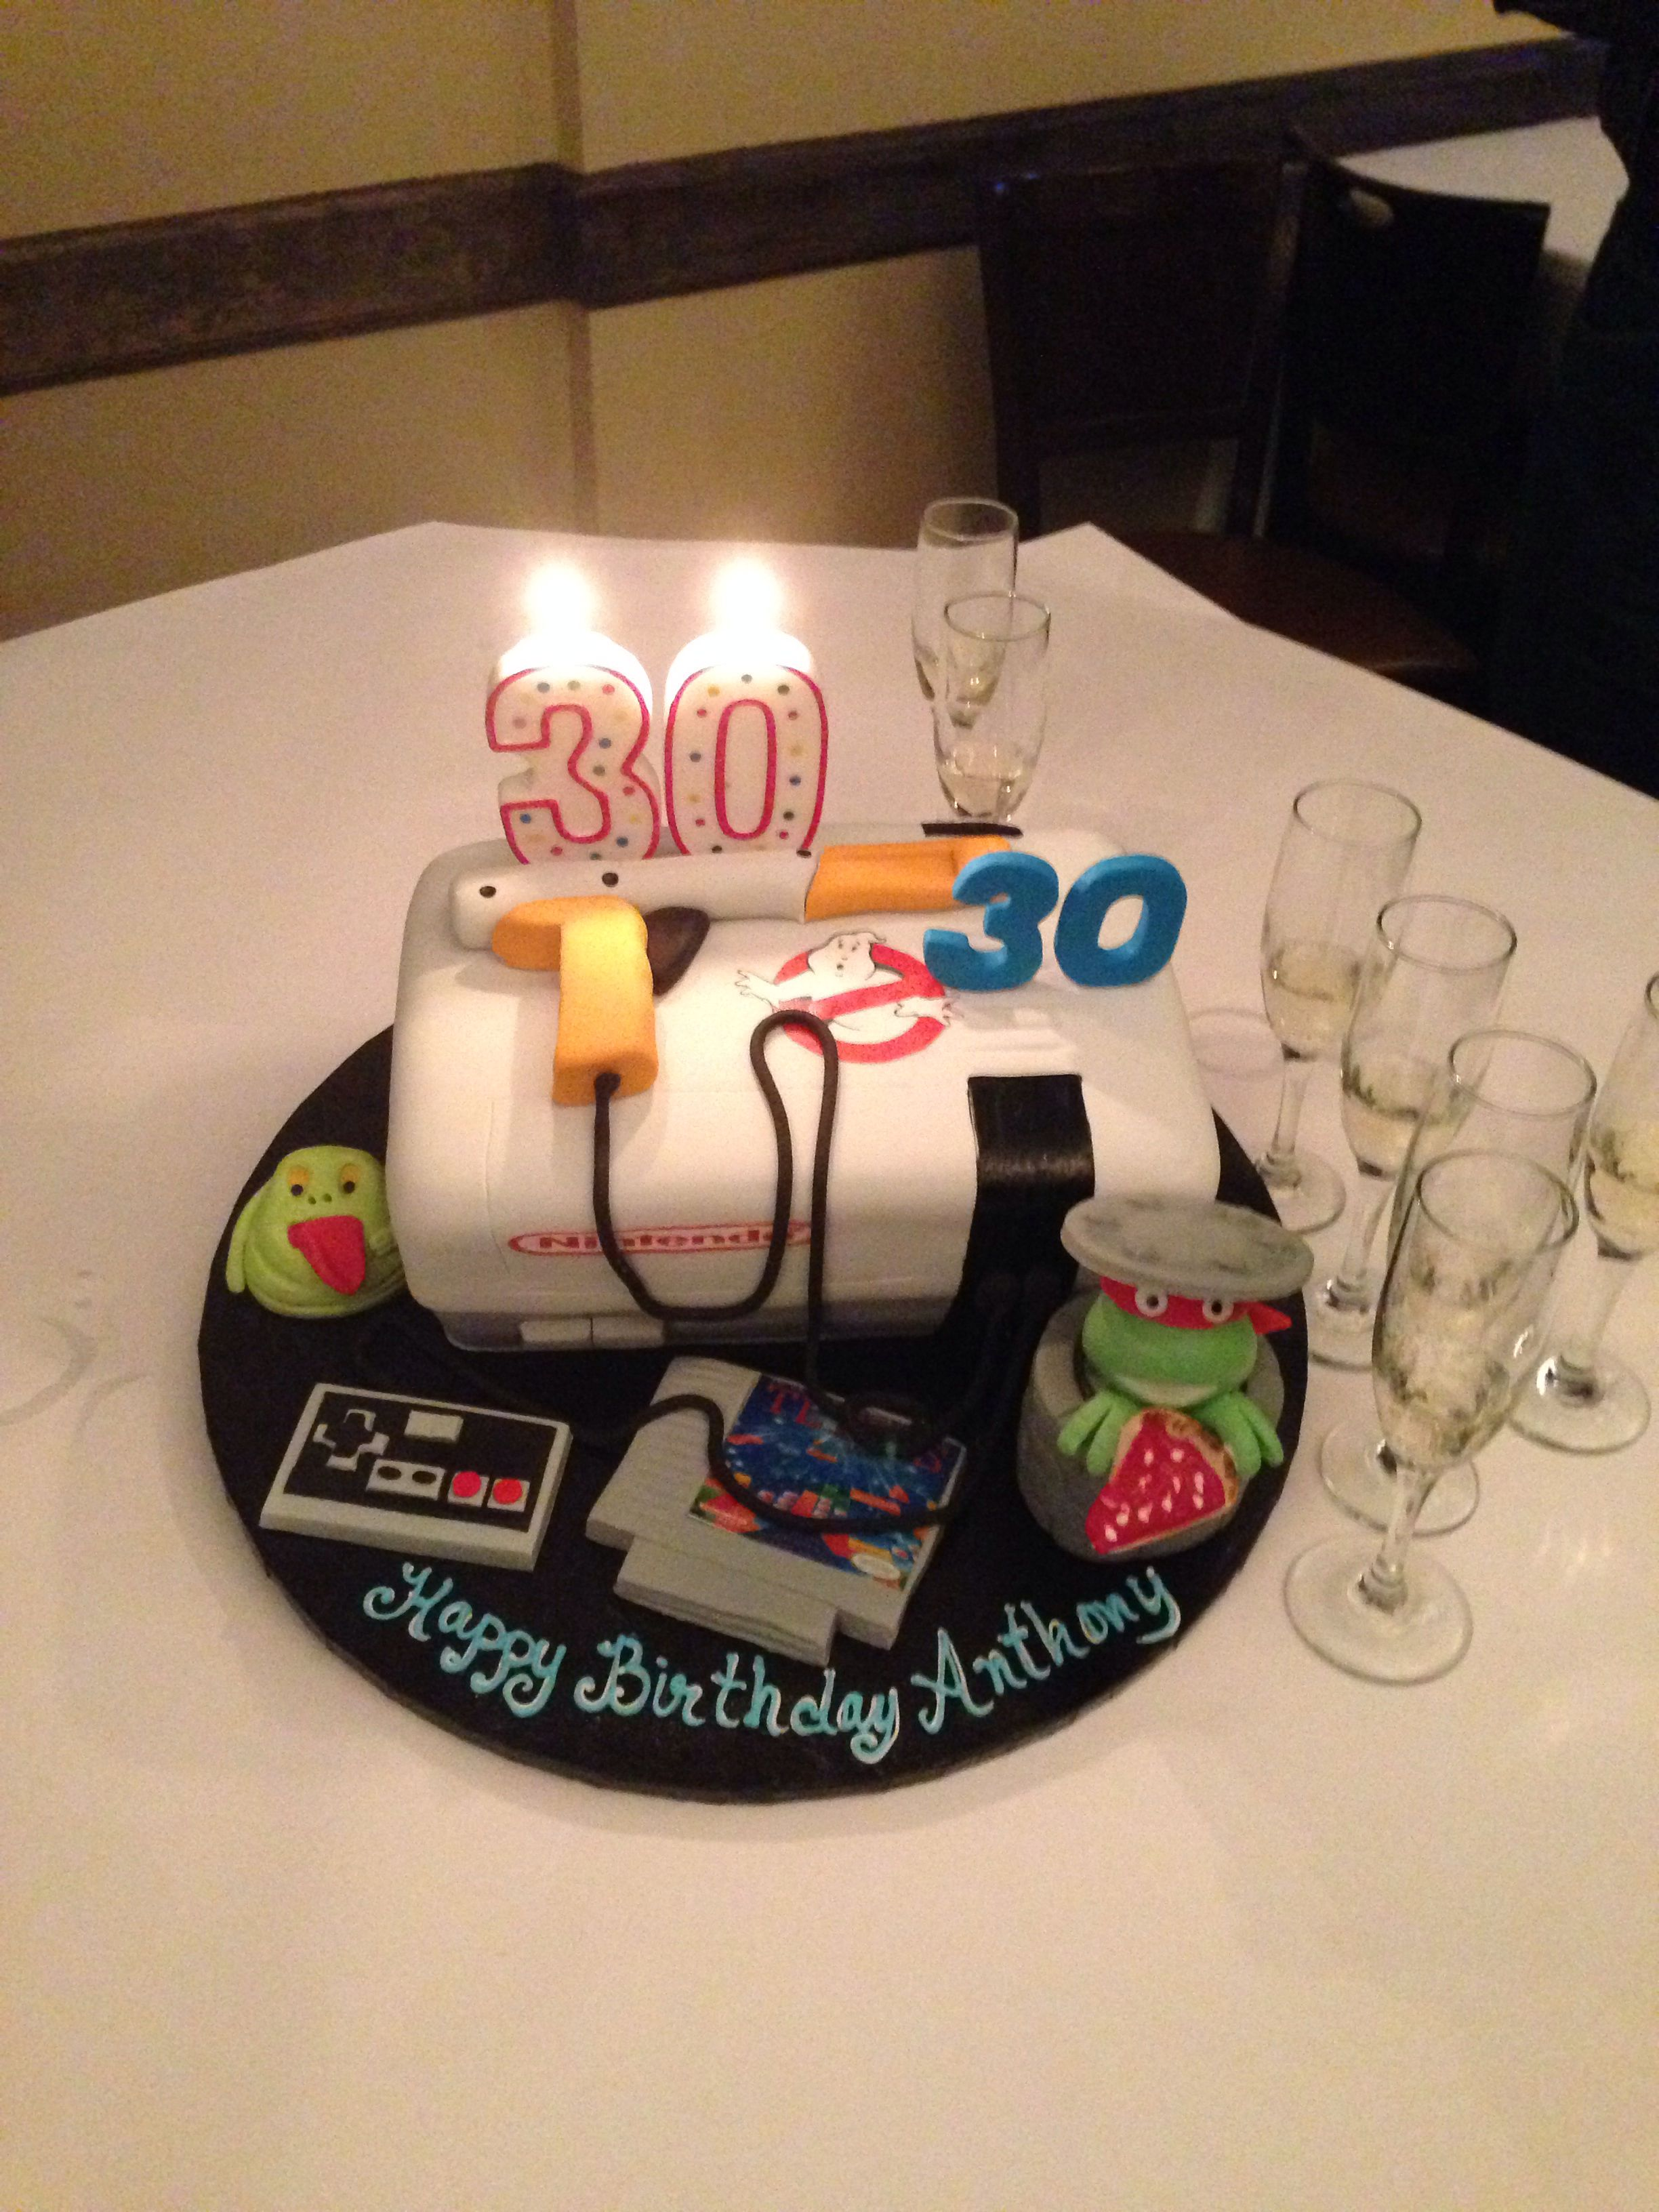 1984 30th Birthday Cake 30 Birthday Cake Cute Birthday Cakes